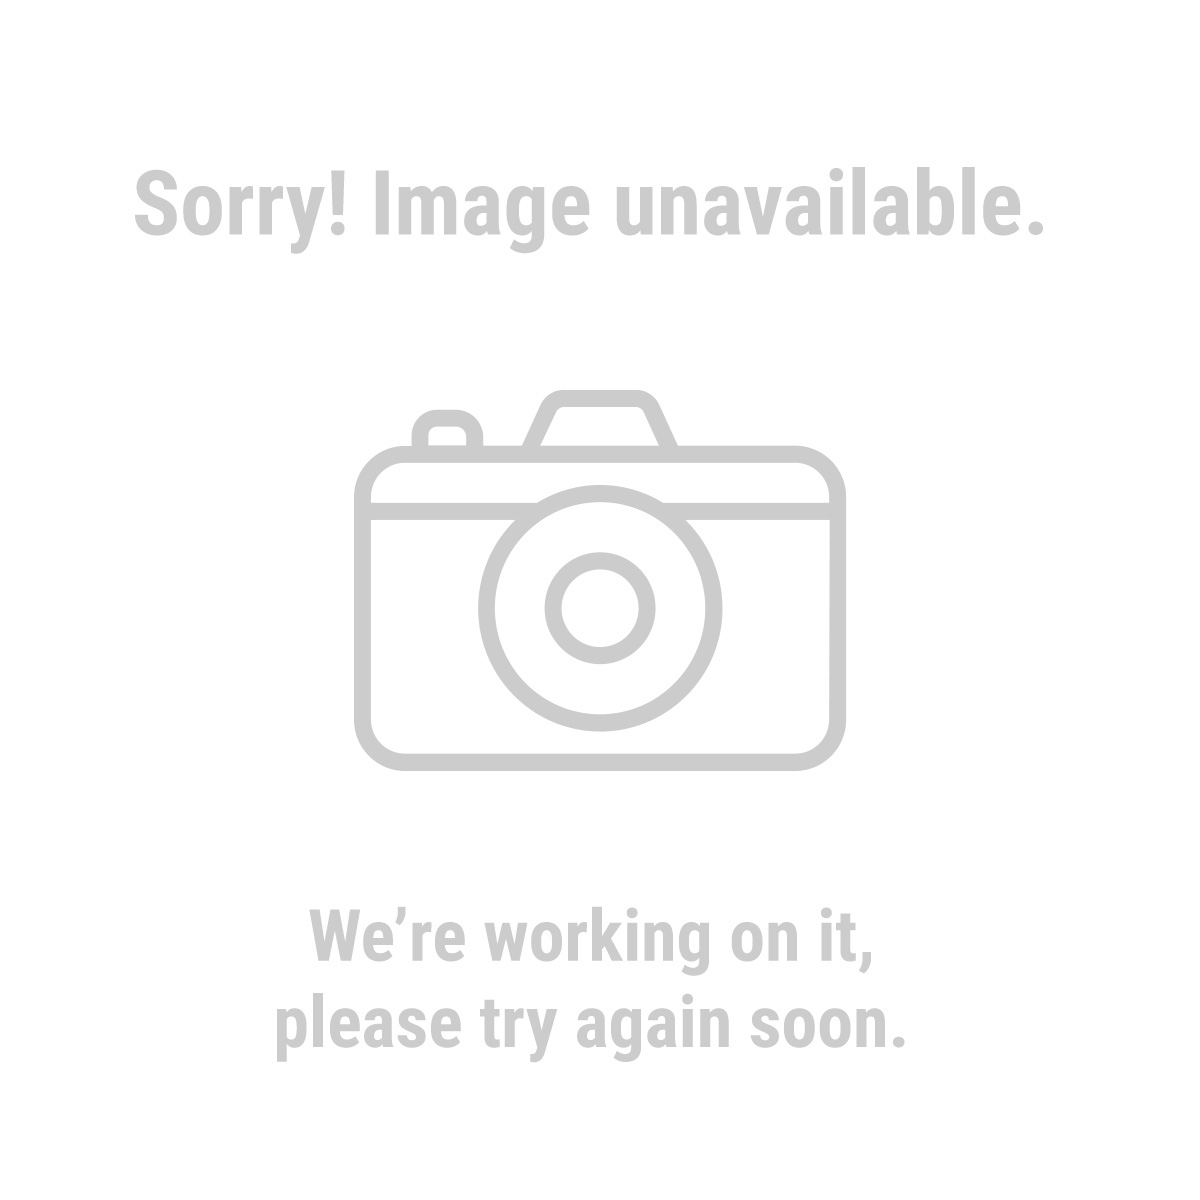 Central Pneumatic 67450 11 Gauge Industrial Roofing Nailer